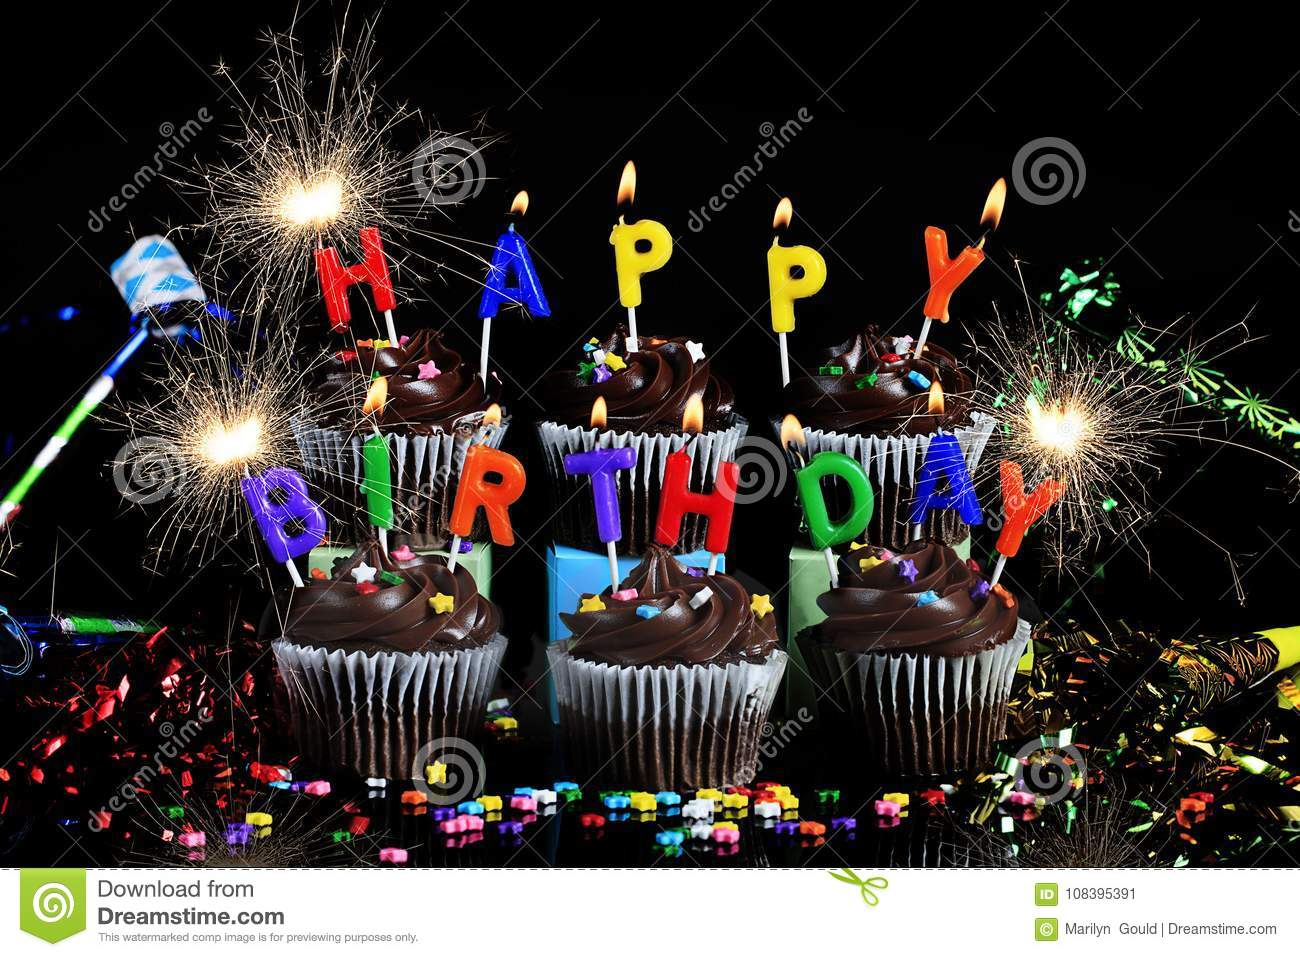 Chocolate Cupcakes With Lit Candles Spelling Happy Birthday Colorful Star Candies On And Surounding Black Surface Gold Sparklers H